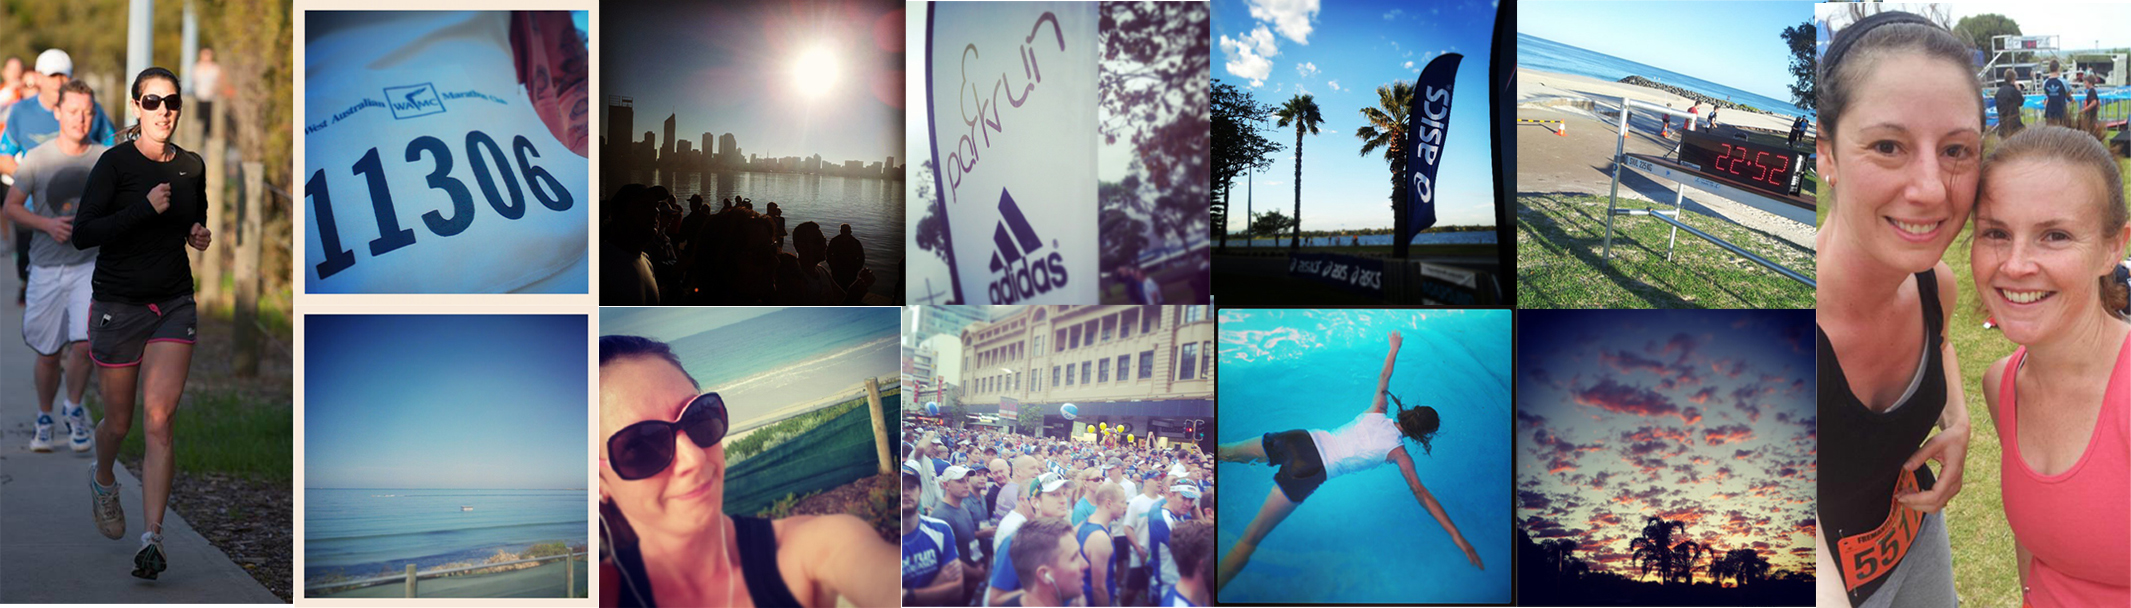 A compilation of my experience with running, 2013 Perth City to Surf, Marathon, vlog, video blog, sponsorship, photography